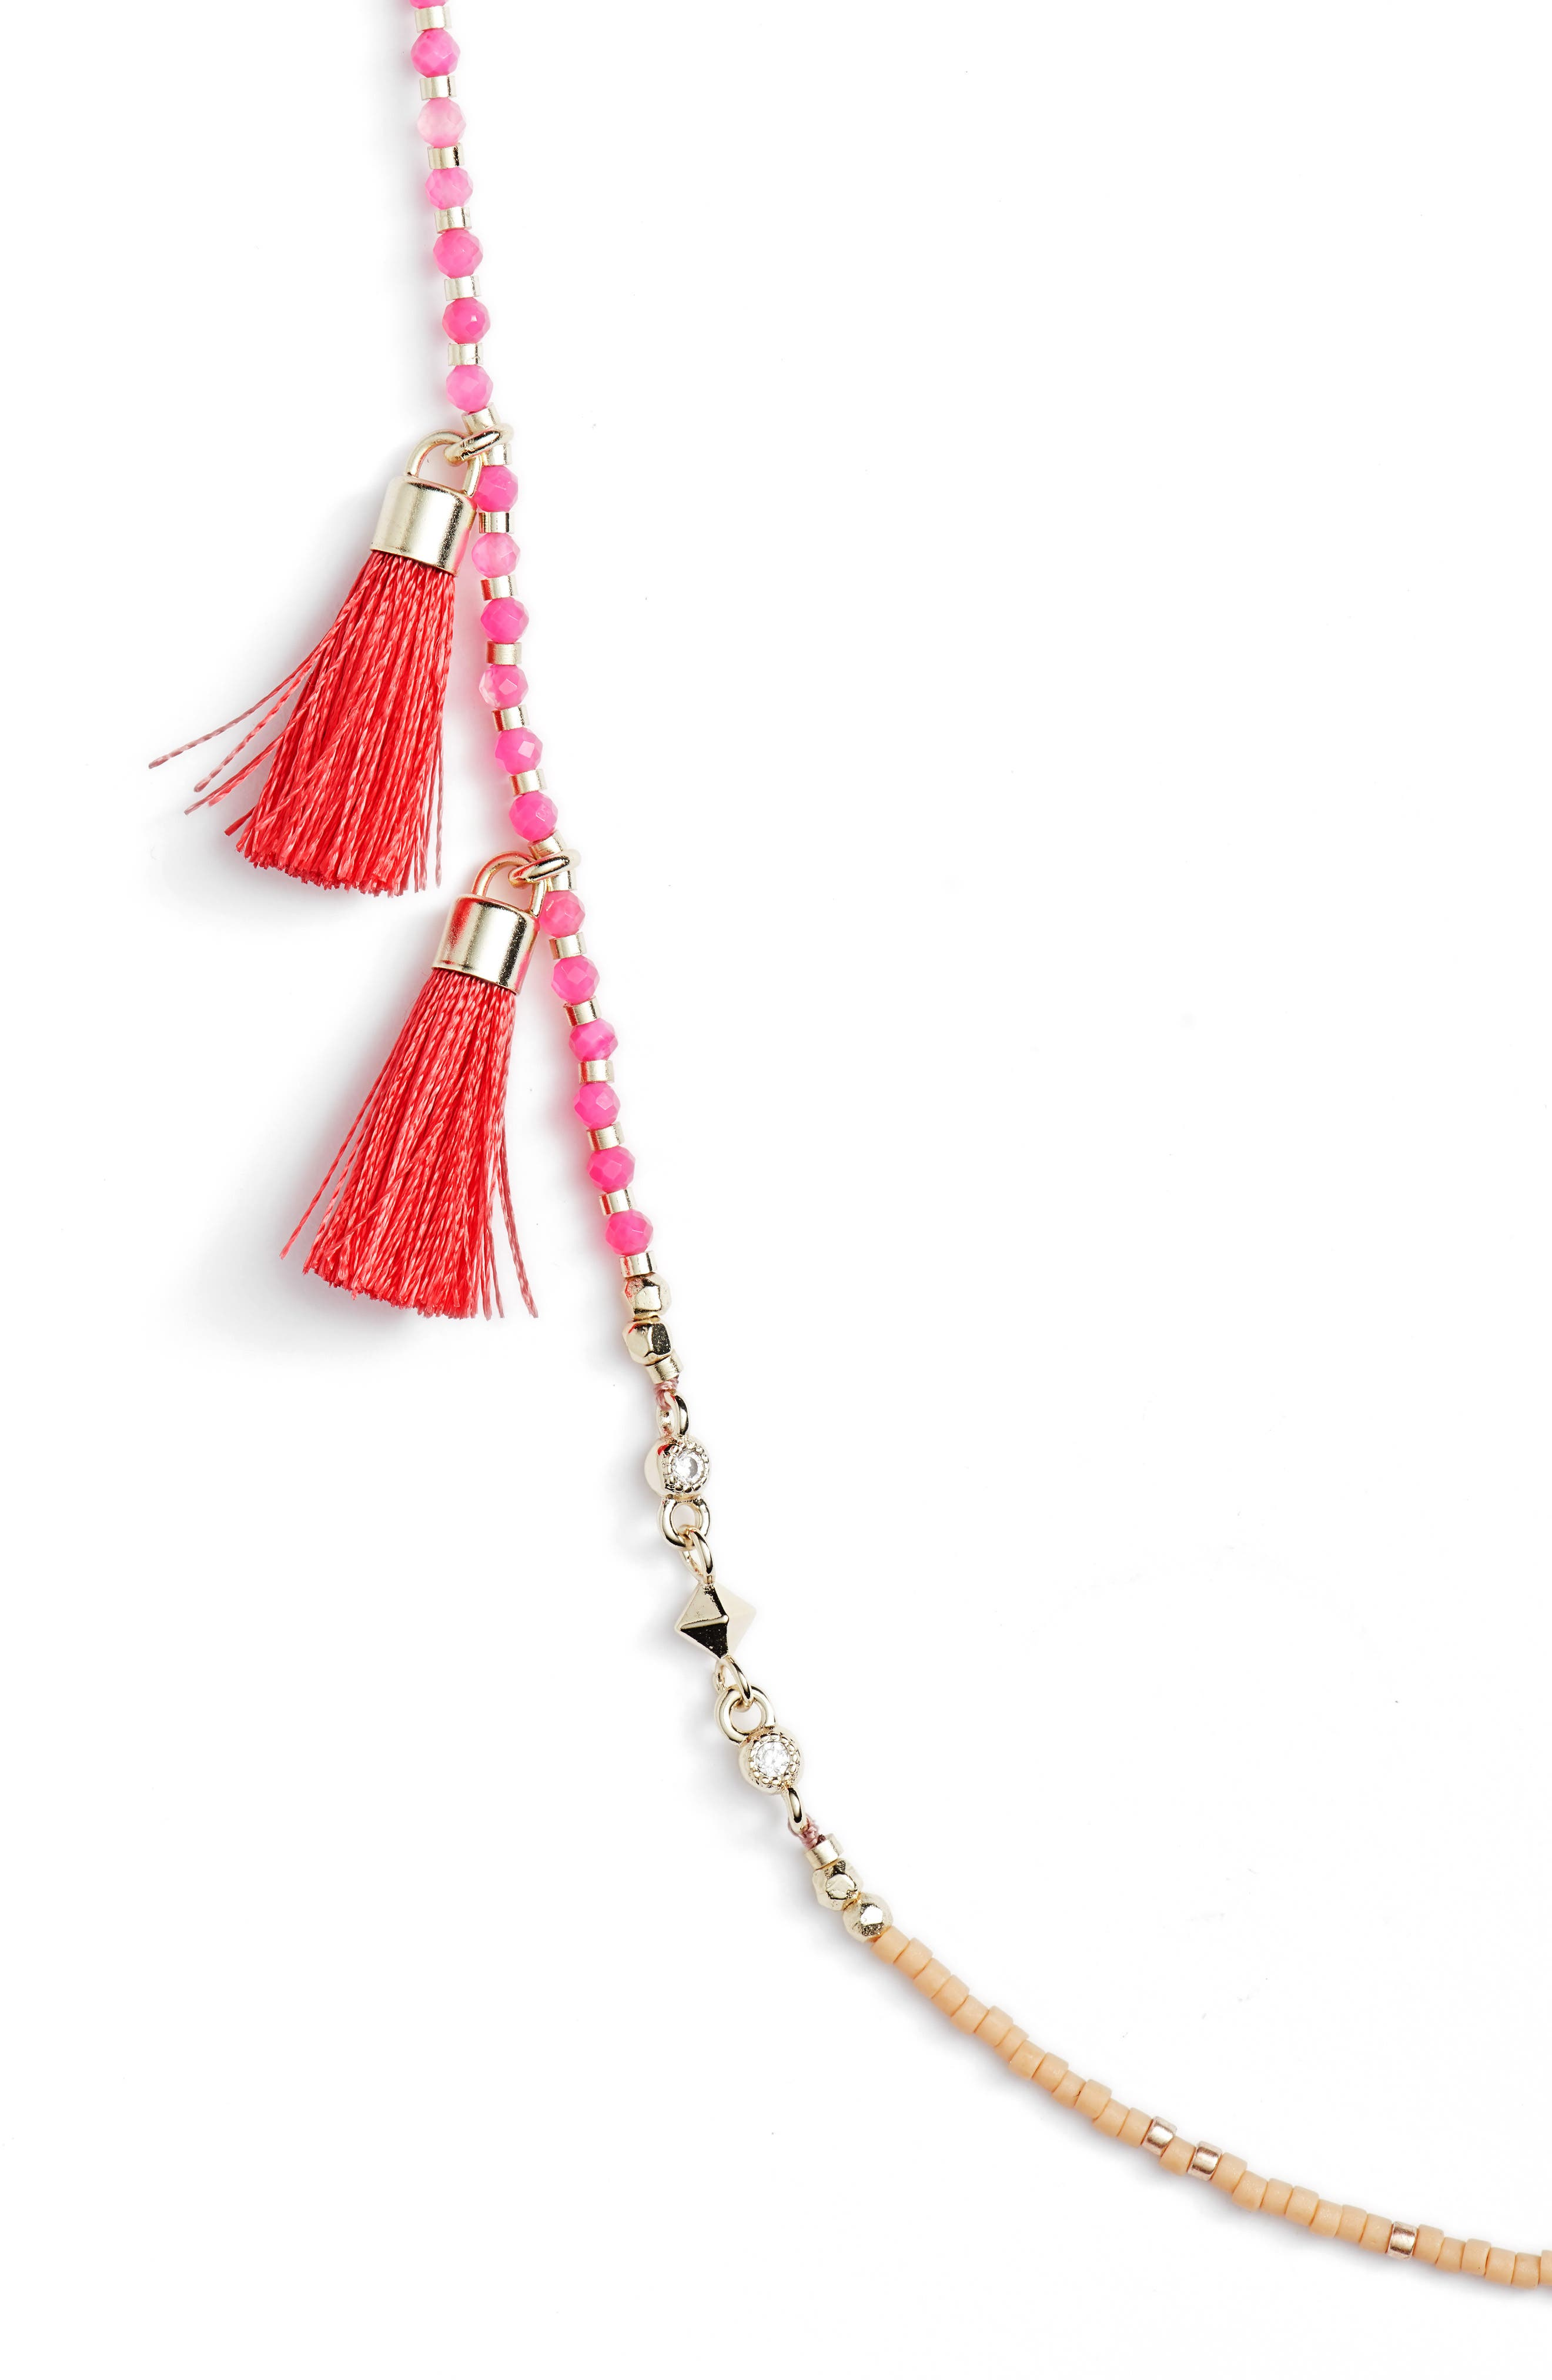 Augusta Tassel Necklace,                             Alternate thumbnail 2, color,                             Pink Mix/ Gold